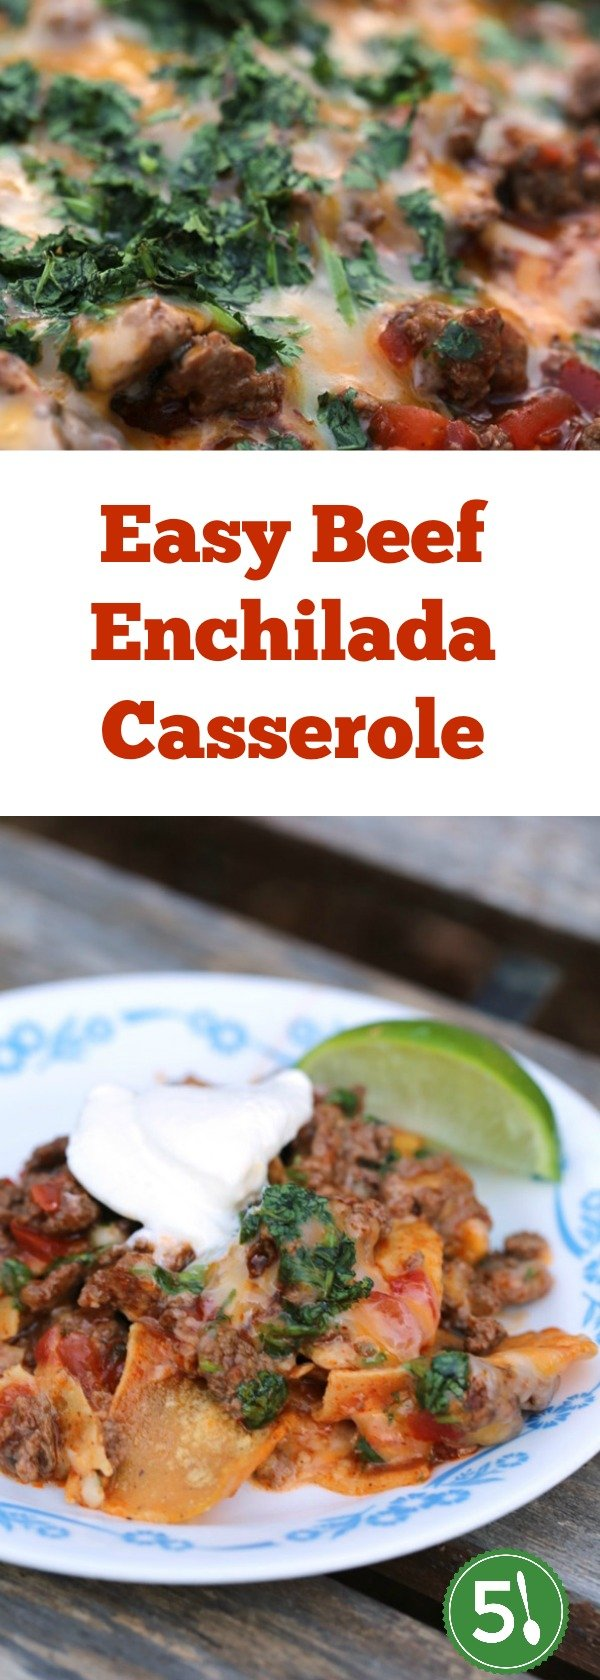 This Ground Beef Enchilada Layered Casserole Is An Easy Dinner Recipe That Is Perfect For Busy